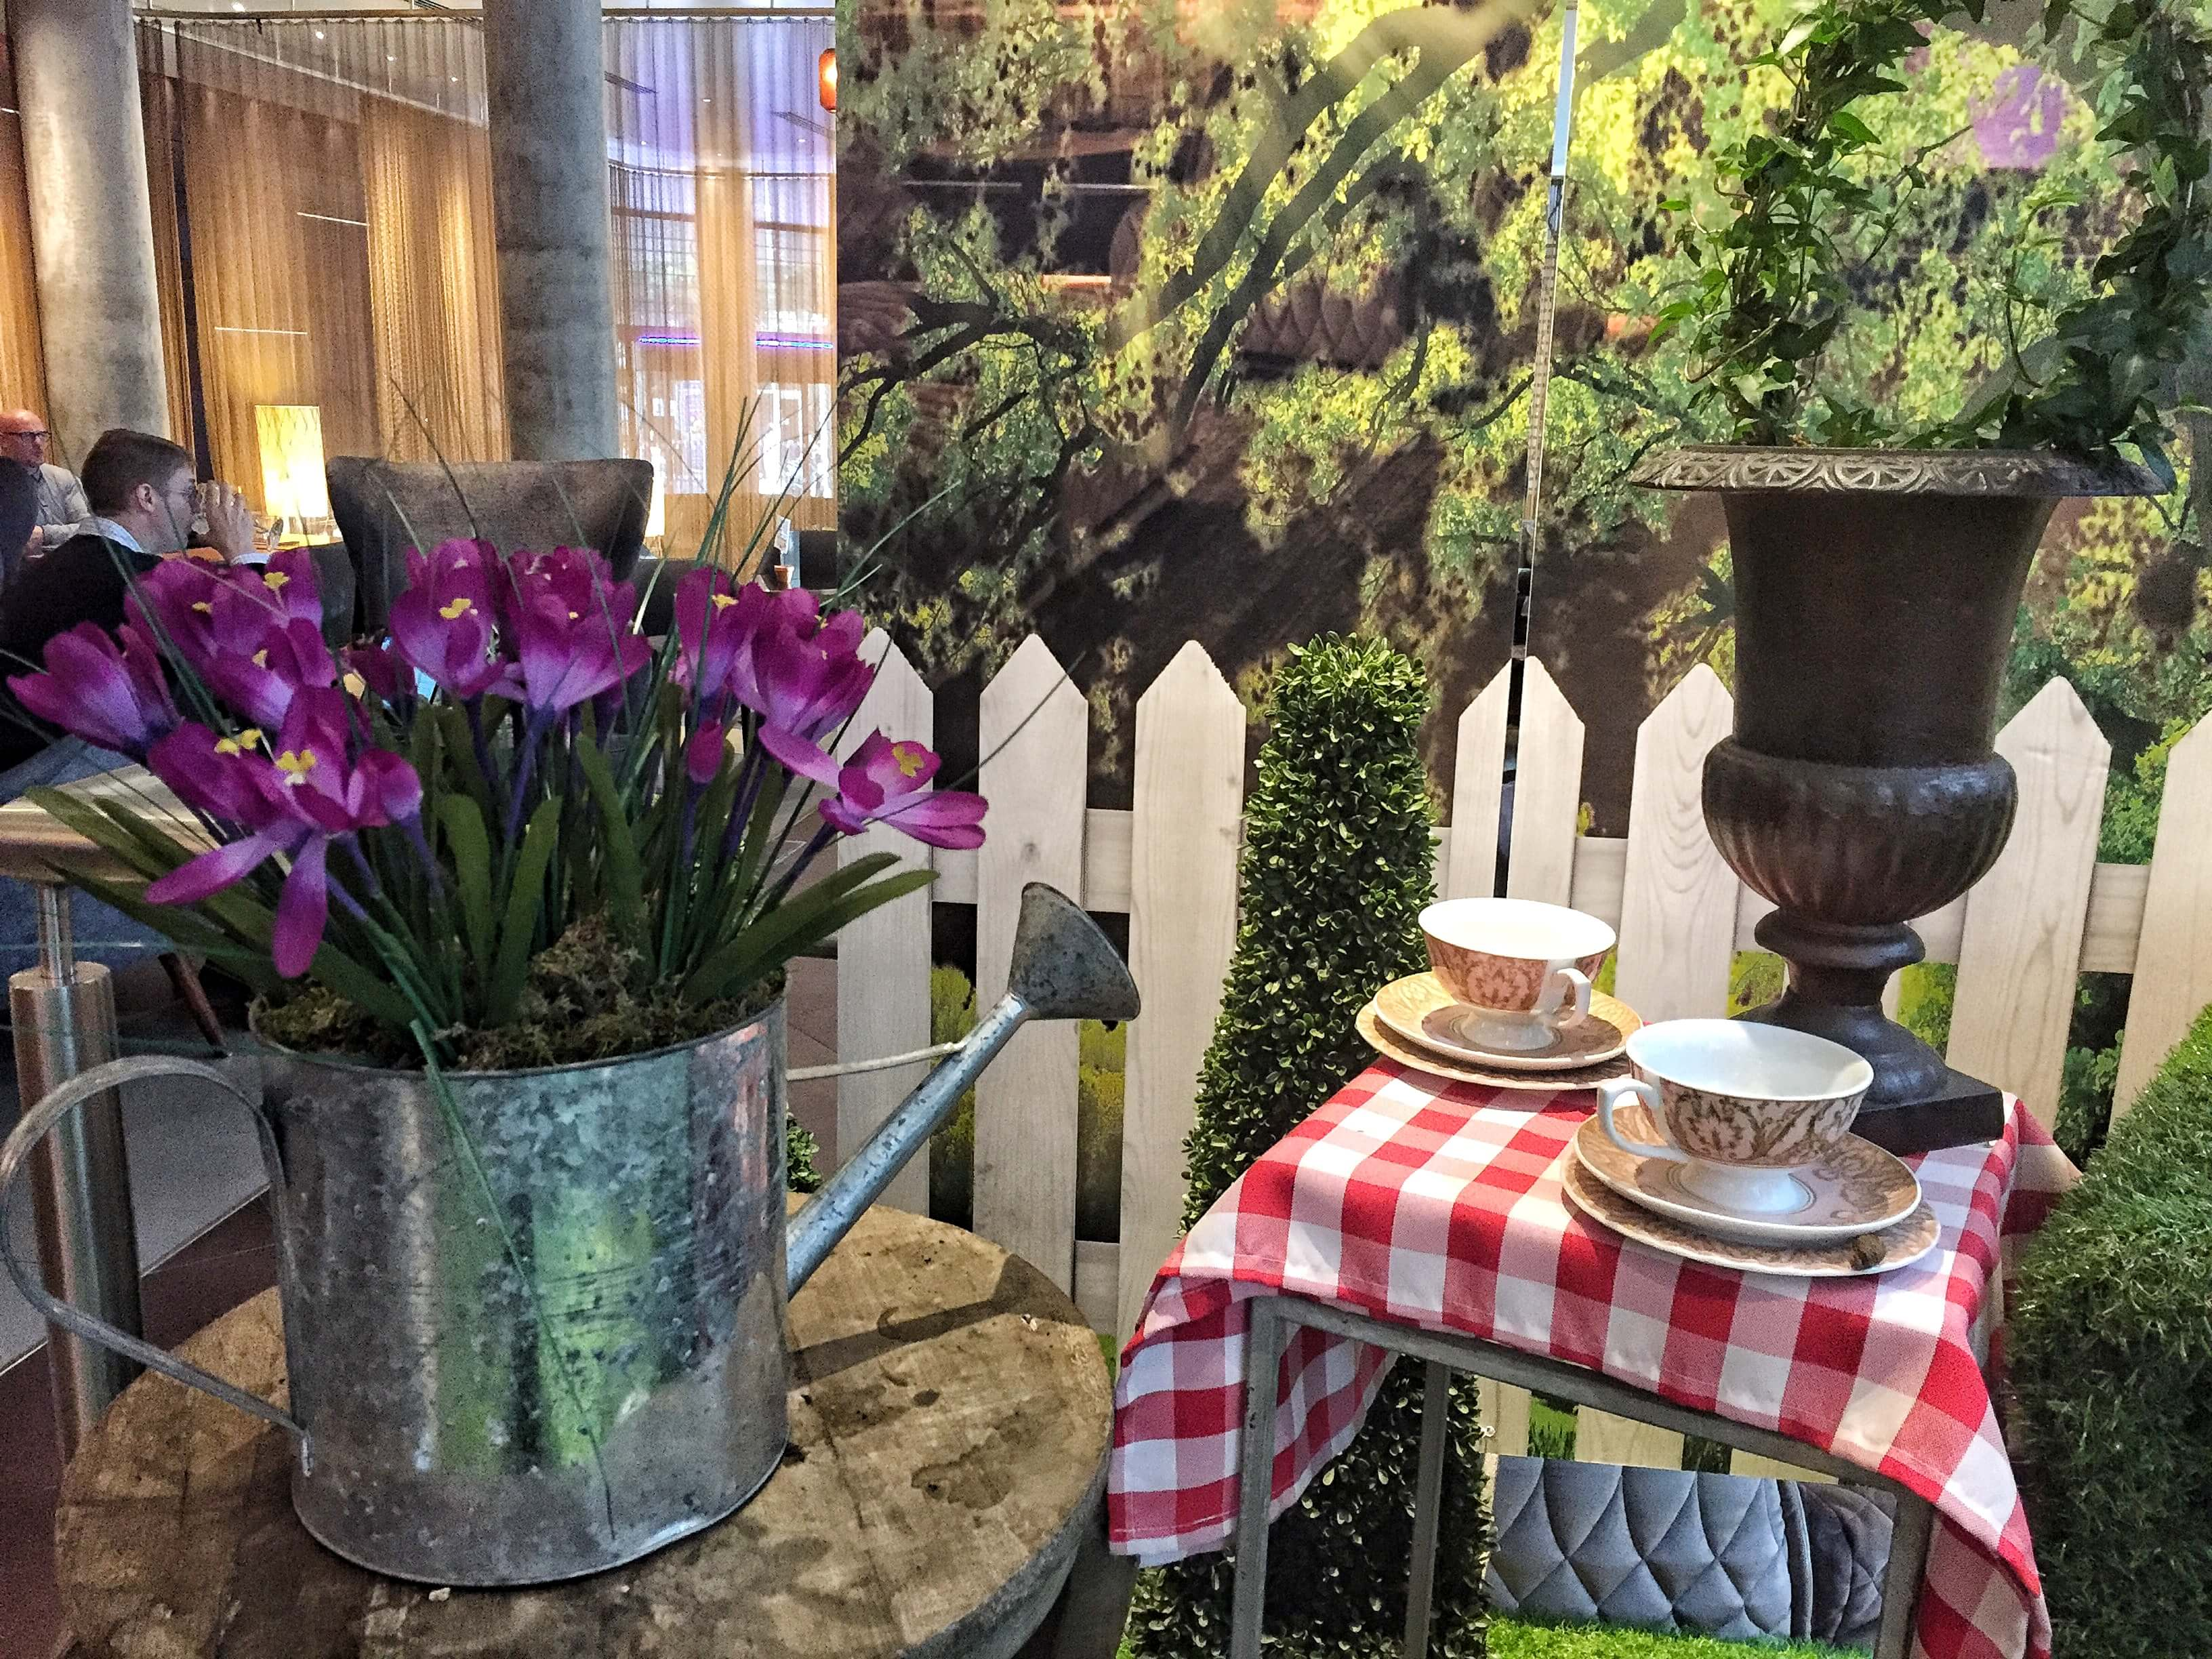 The spring display at TwoRuba at the Tower Bridge Hilton, London Bridge, London